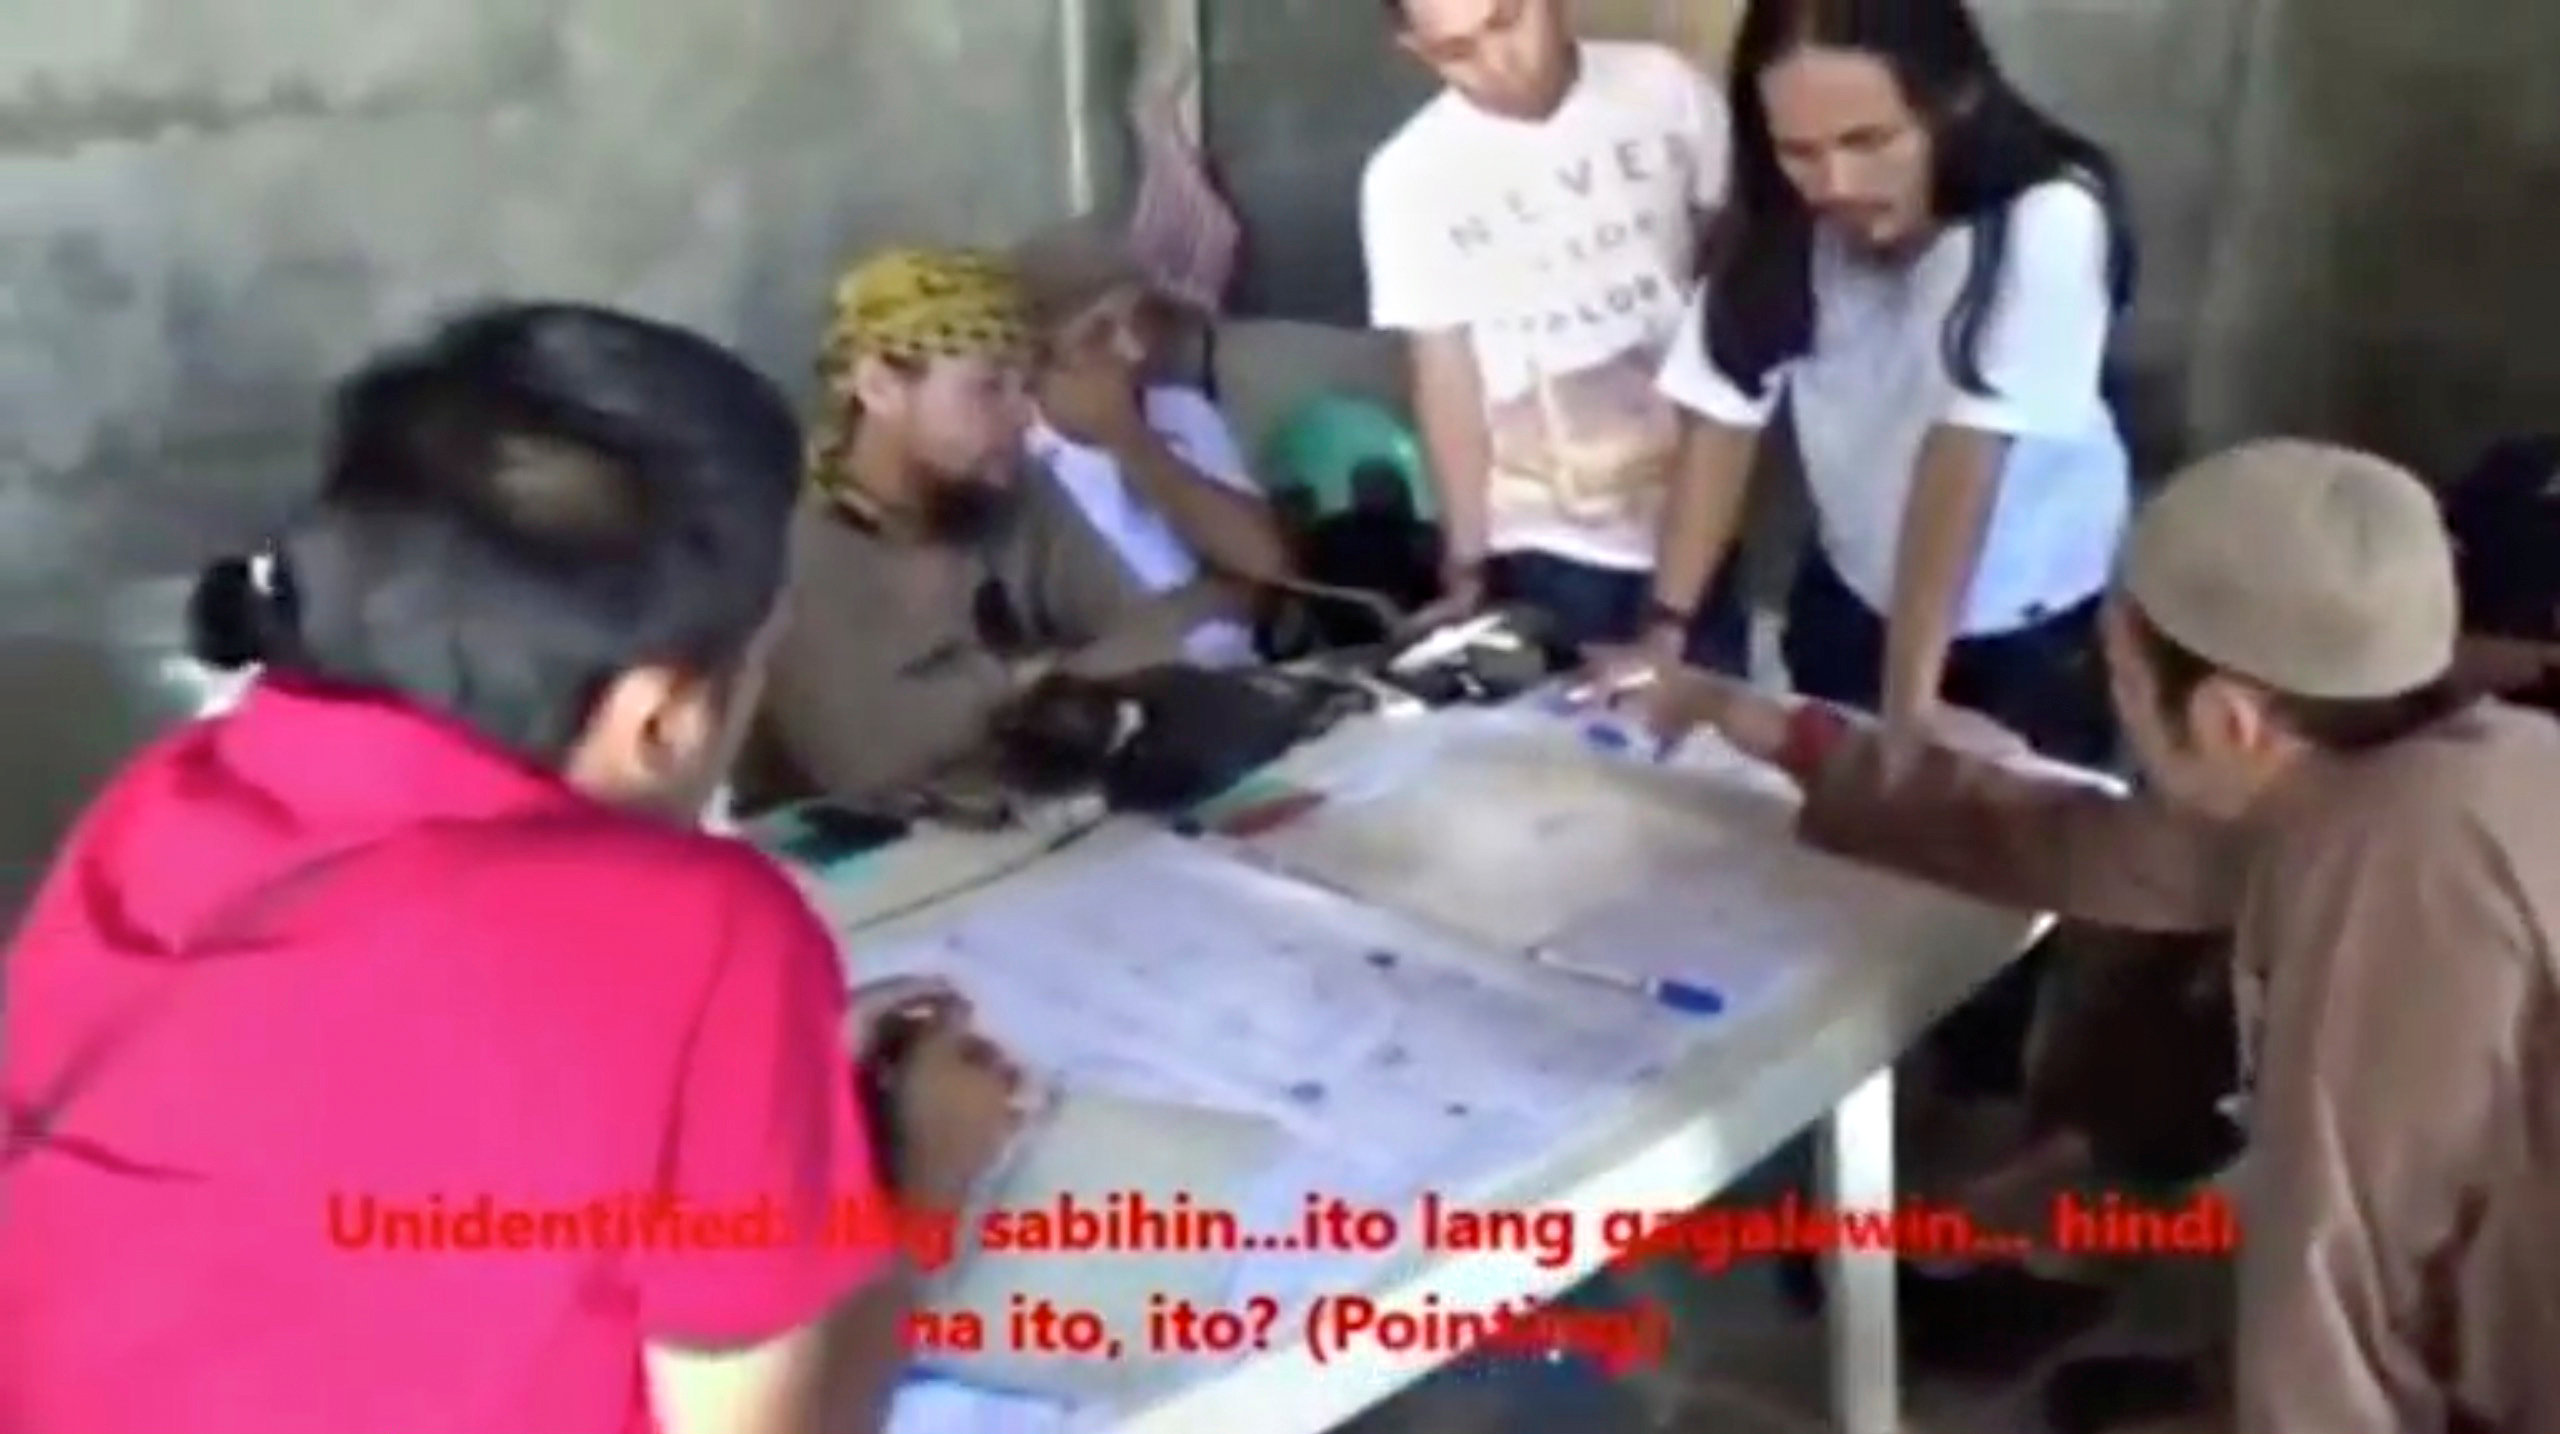 Men identified by Philippines Intelligence officers as Isnilon Hapilon (2nd L, yellow headscarf) and Abdullah Maute (2nd R, standing, long hair) are seen in this still image taken from video released by the Armed Forces of the Philippines on June 7, 2017.